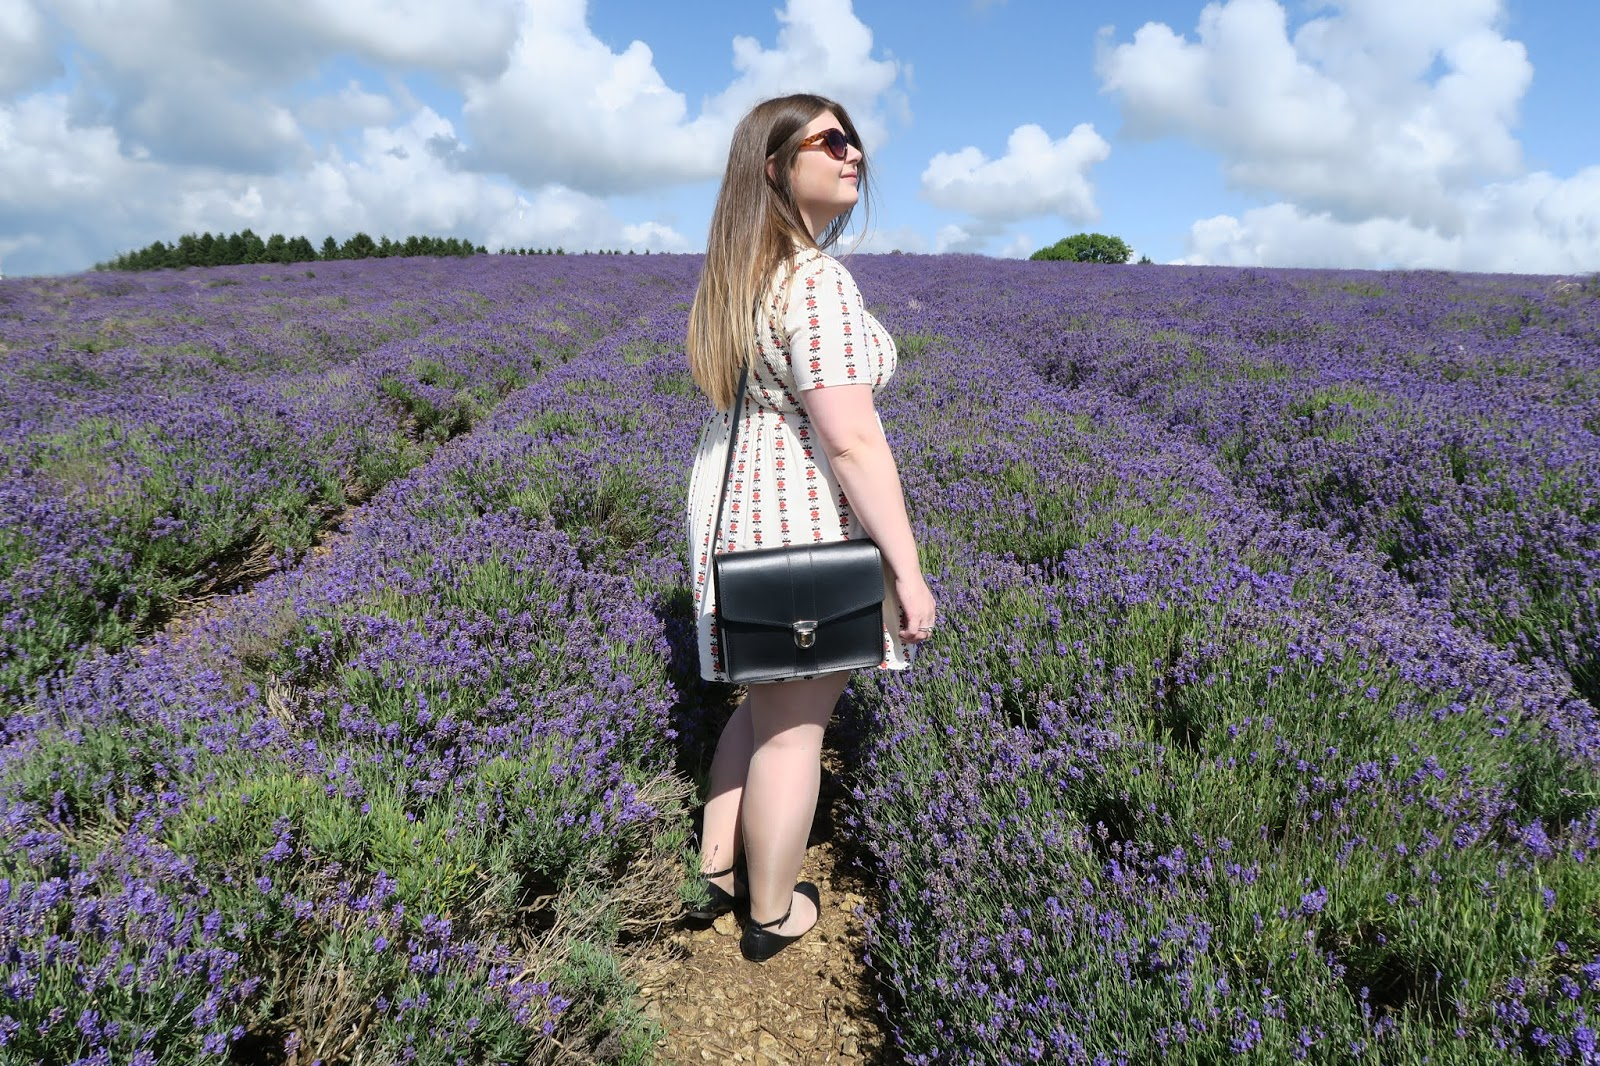 Grace is standing in a field of lavender. She is turned to the side and her black satchel can be seen hanging from her shoulder